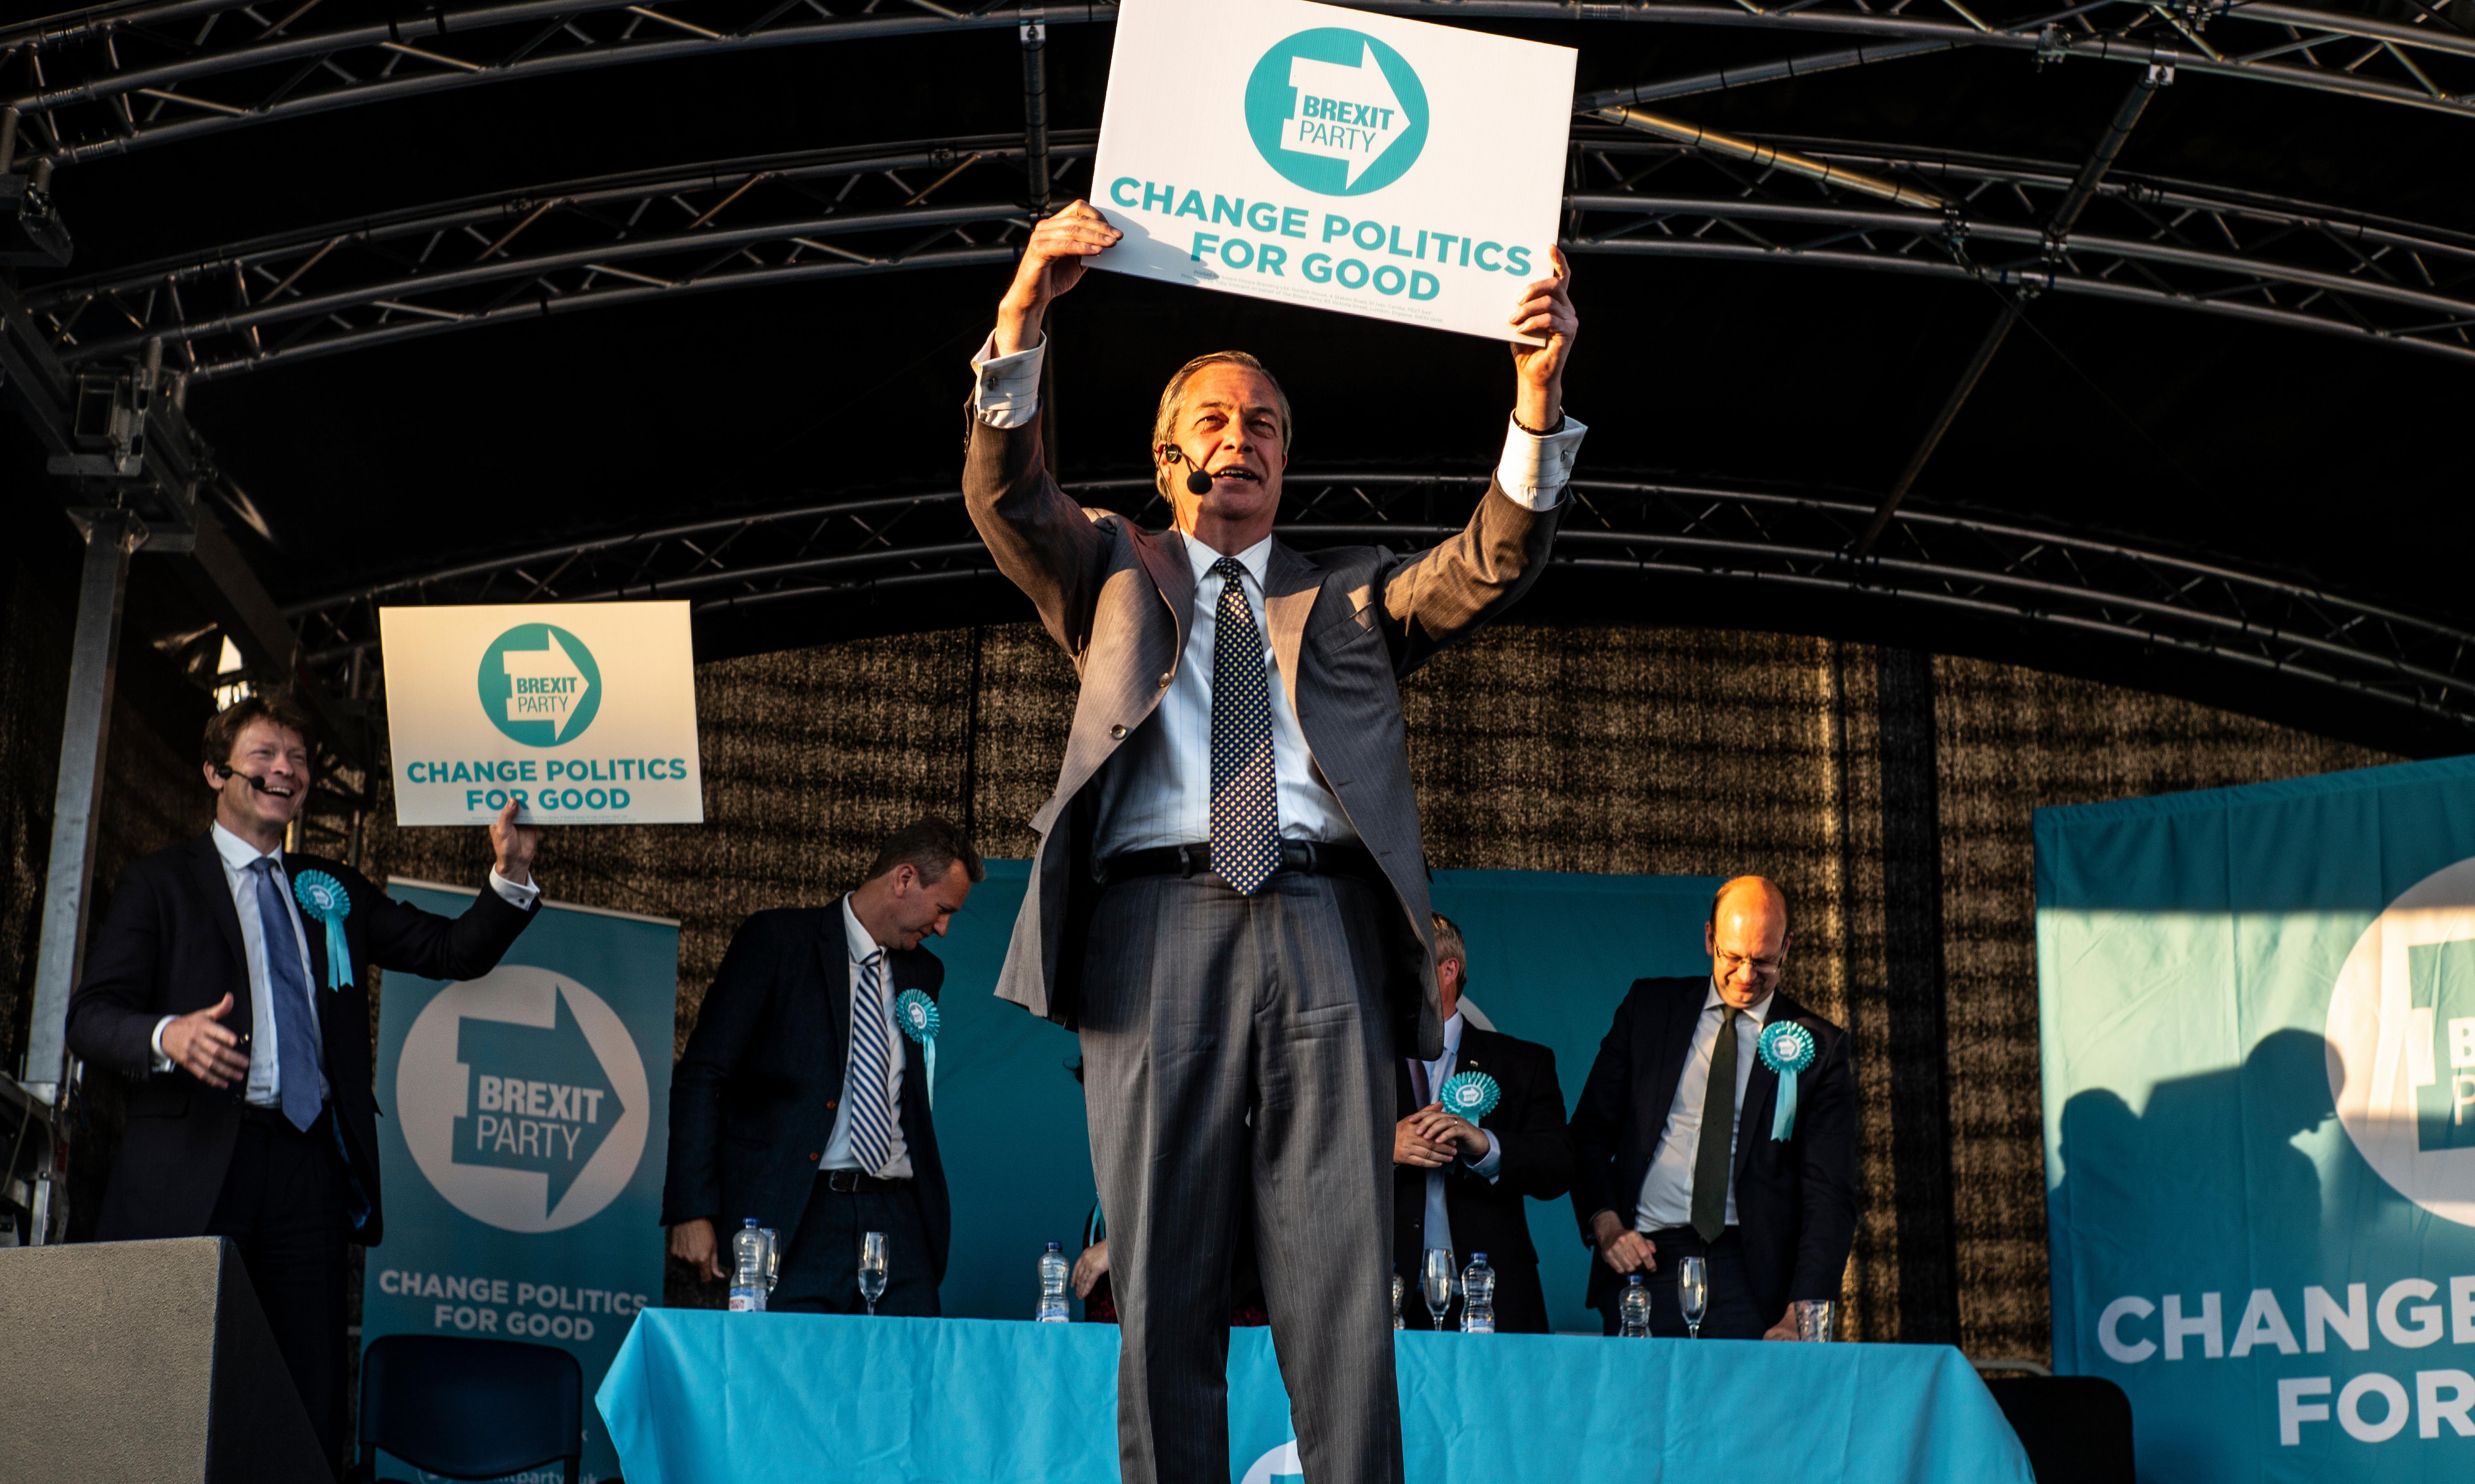 Rage, rapture and pure populism: on the road with Nigel Farage